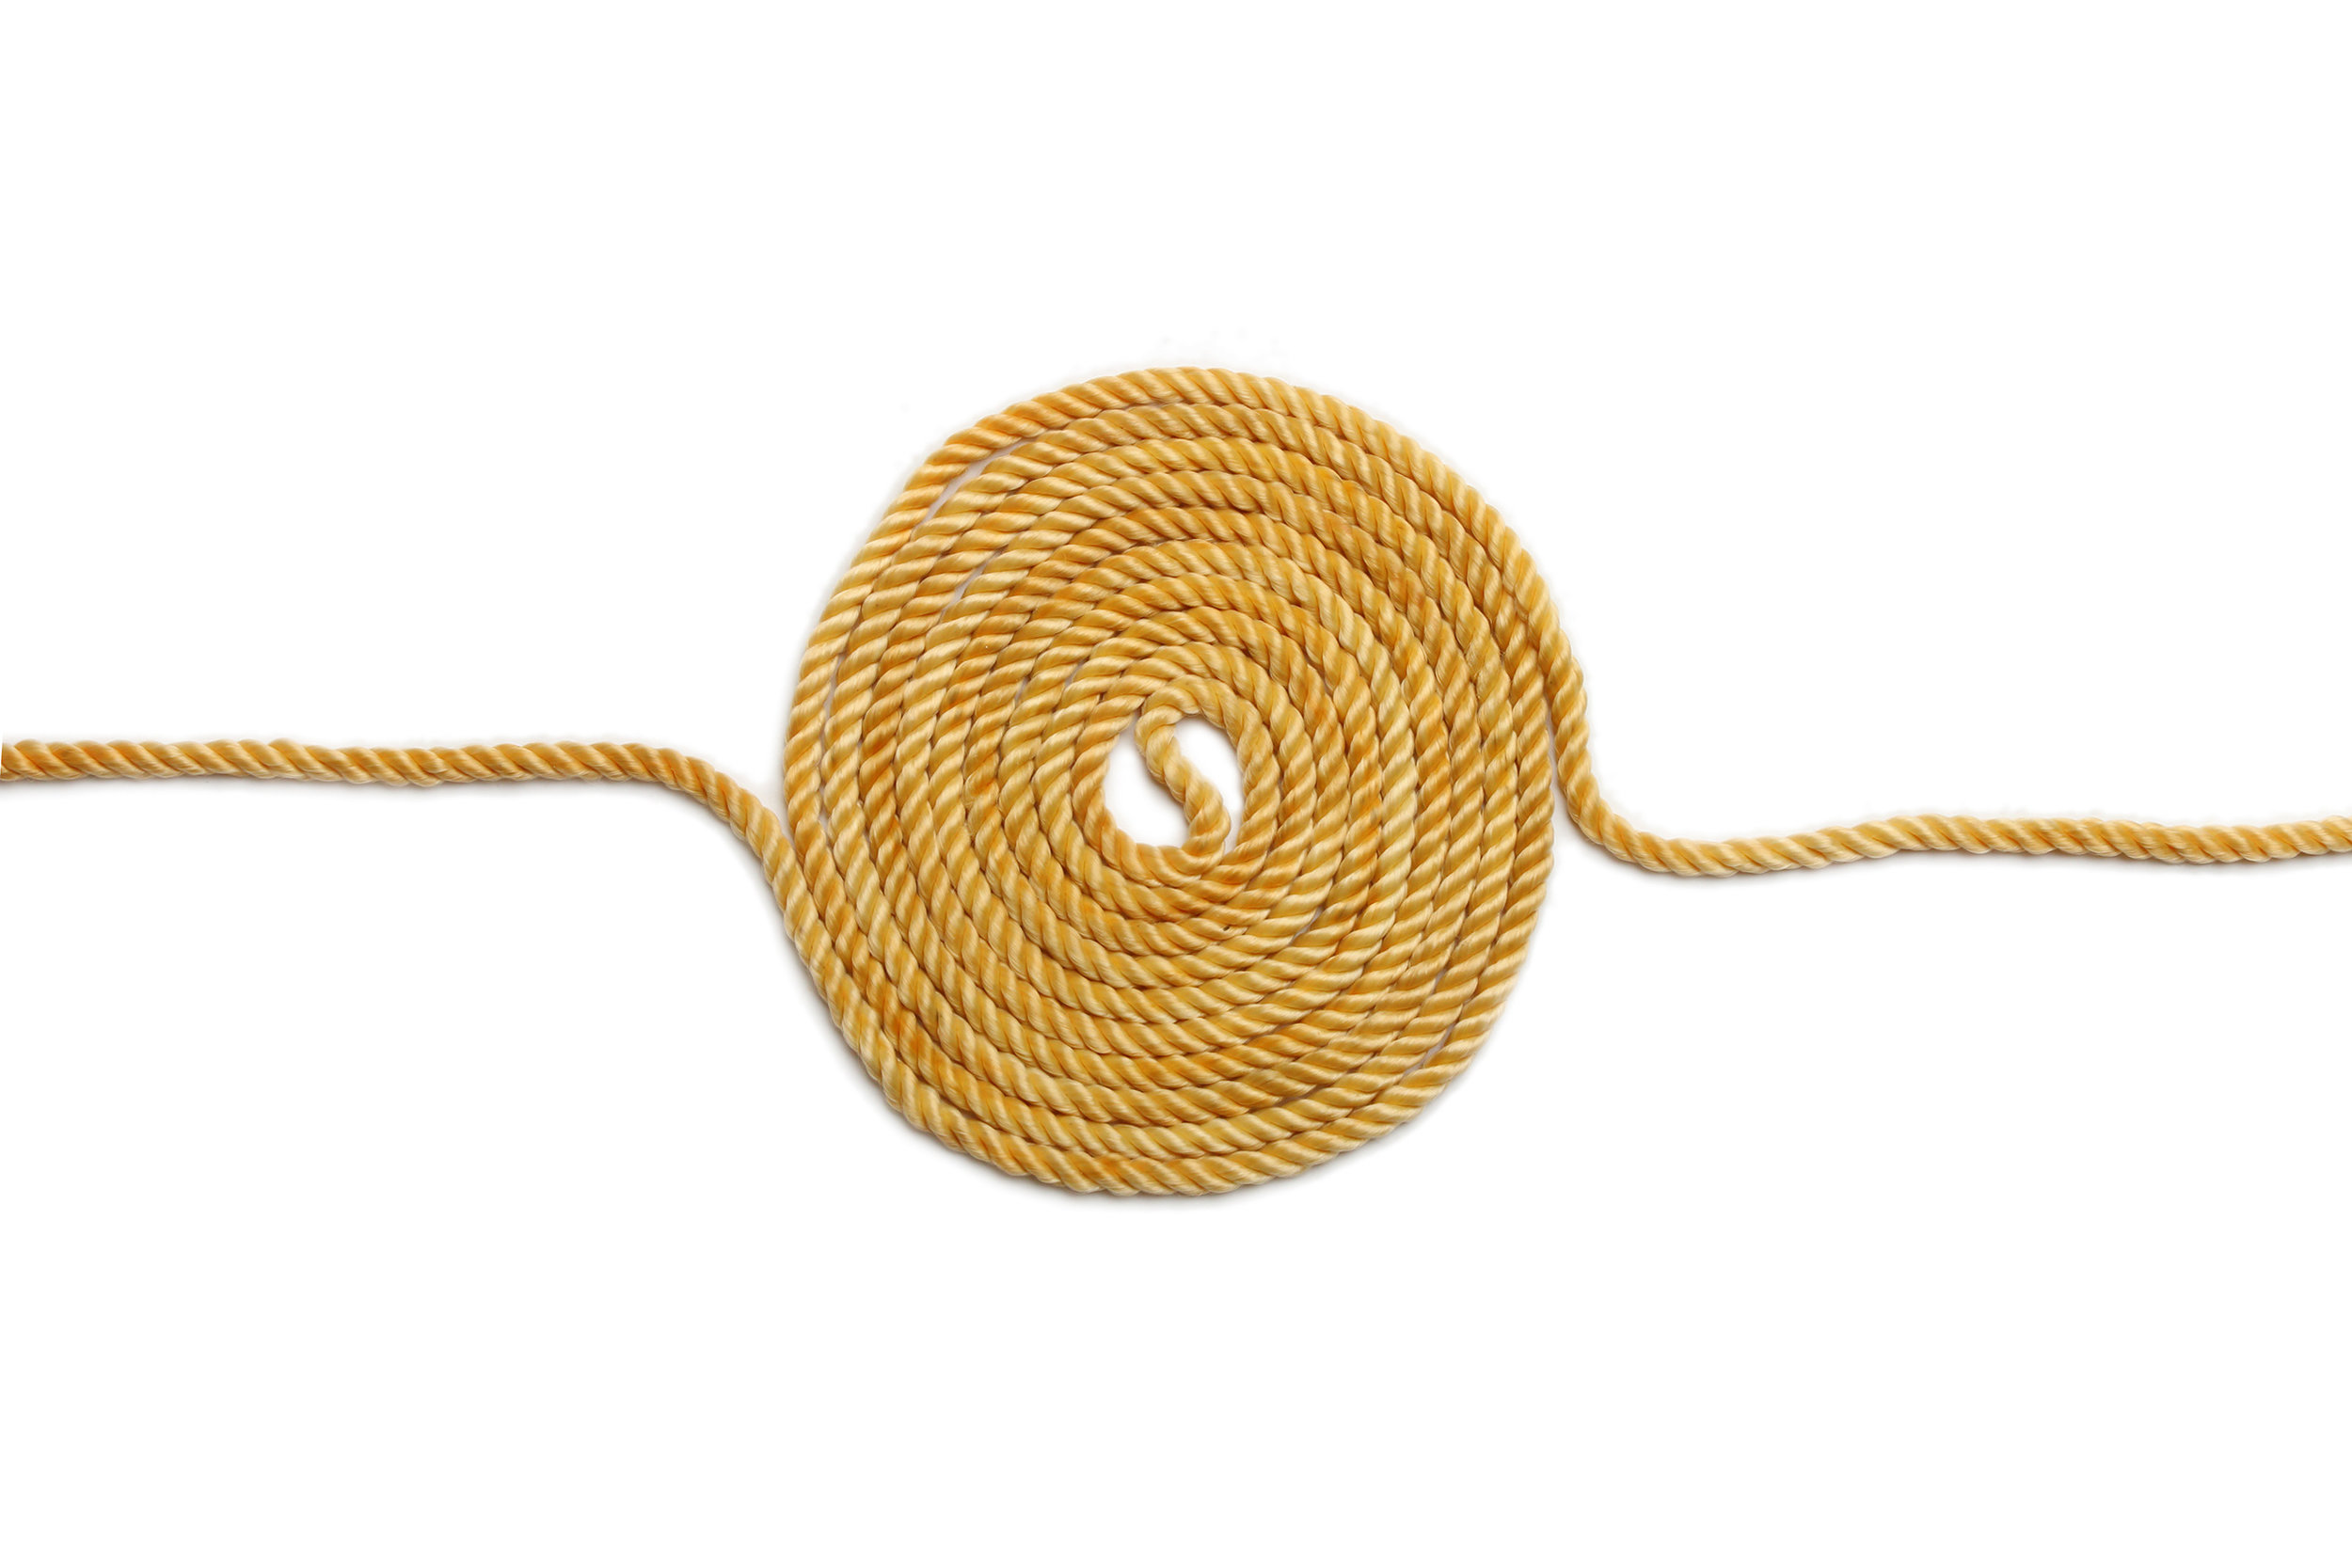 How, or perhaps, Where, would the 2 ends of this rope join up?